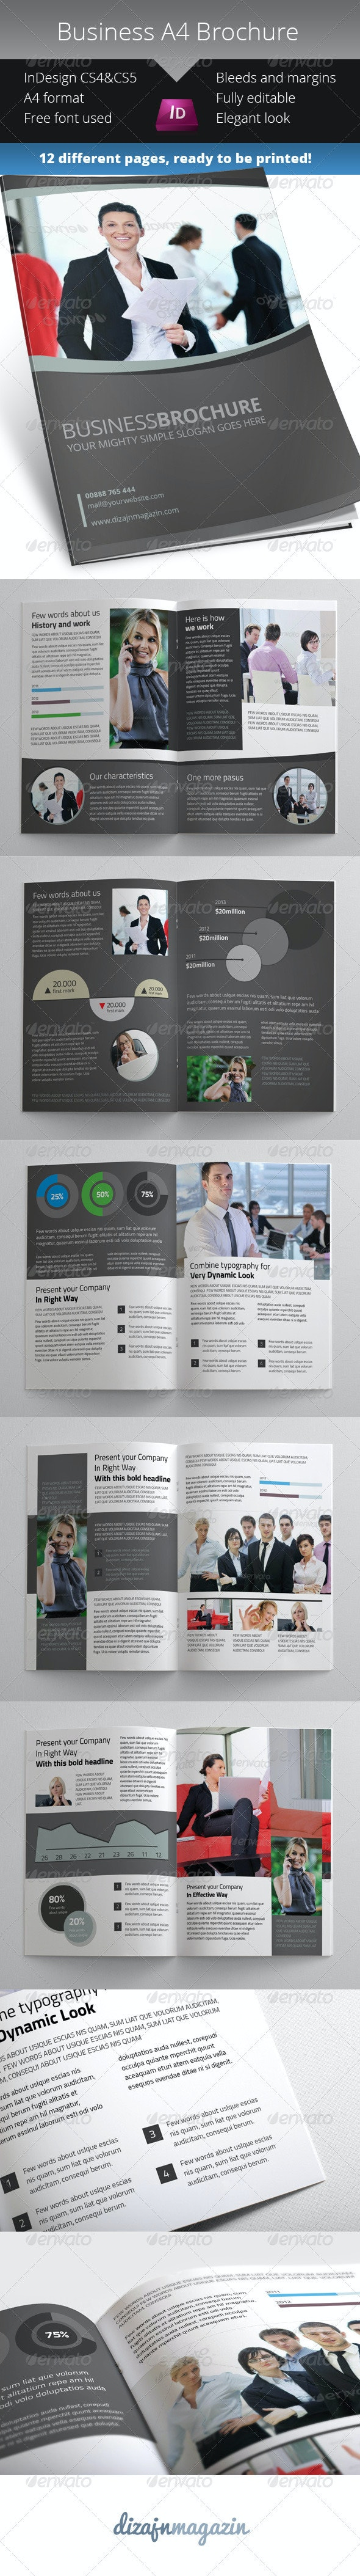 Simple Business Brochure - InDesign Template - Corporate Brochures